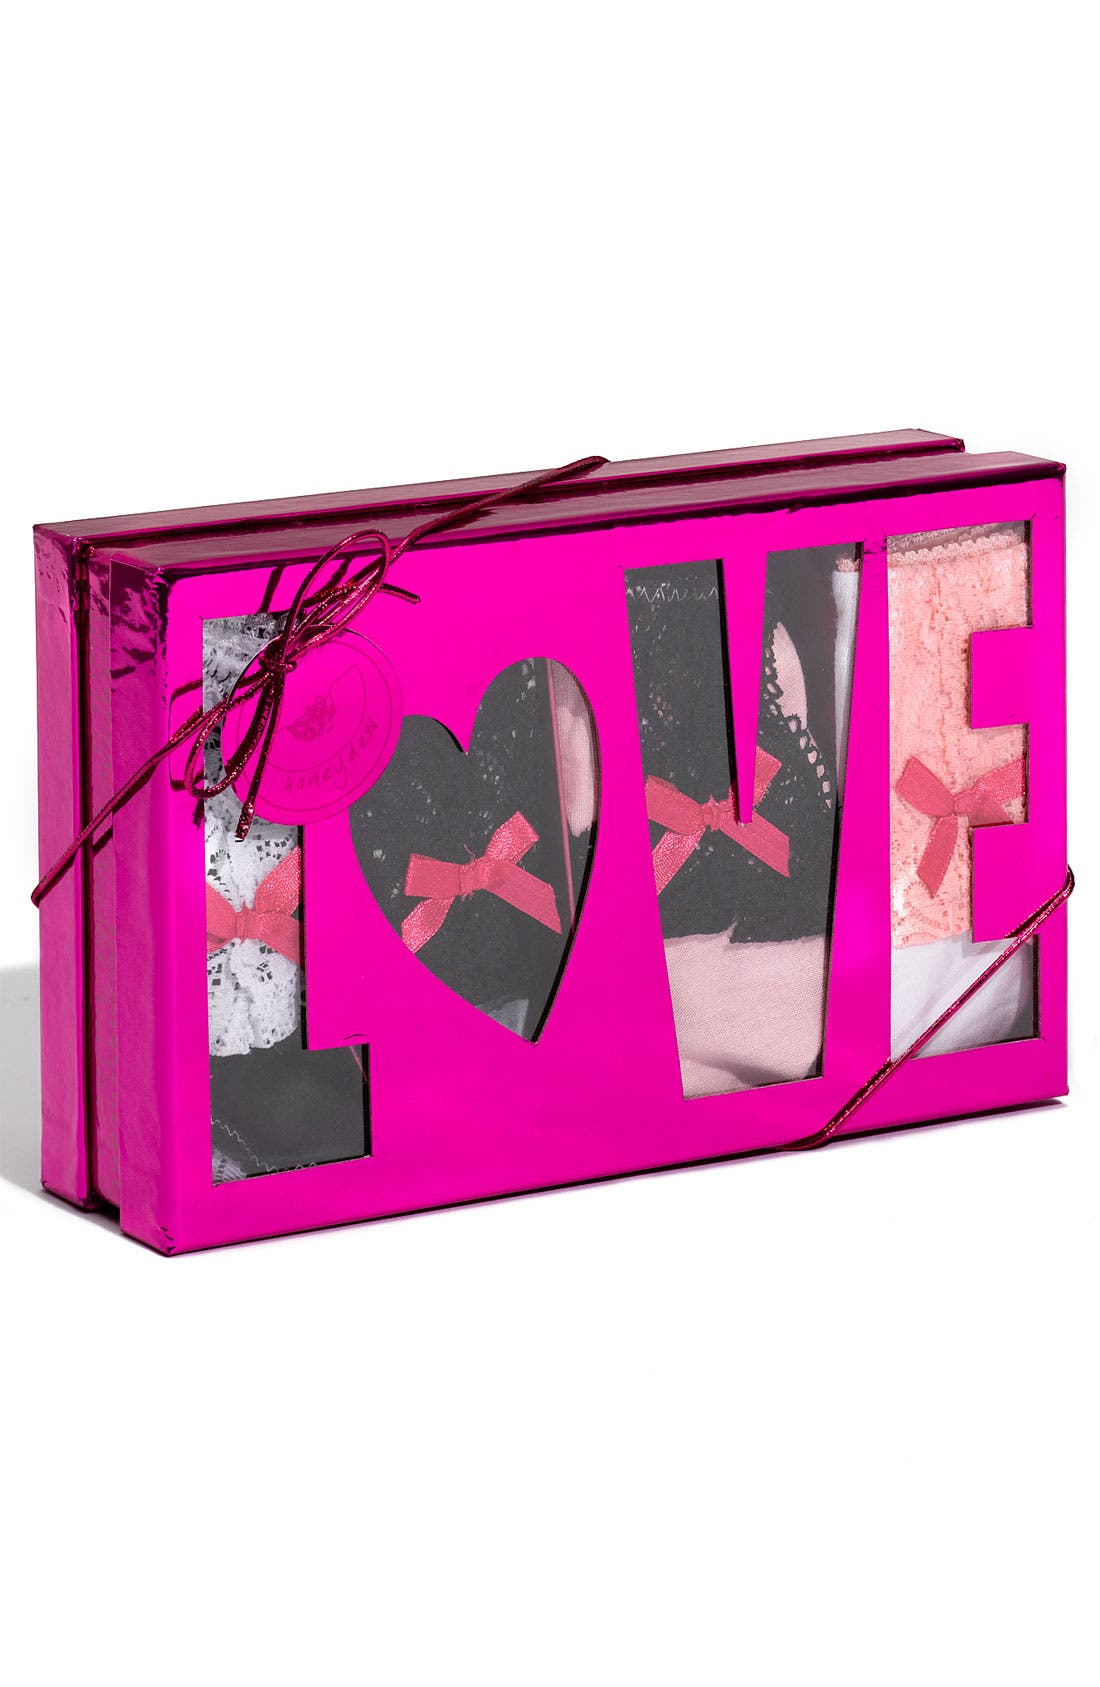 Main Image - Honeydew Intimates 'Pink' Low Rise Hipster Briefs Gift Set